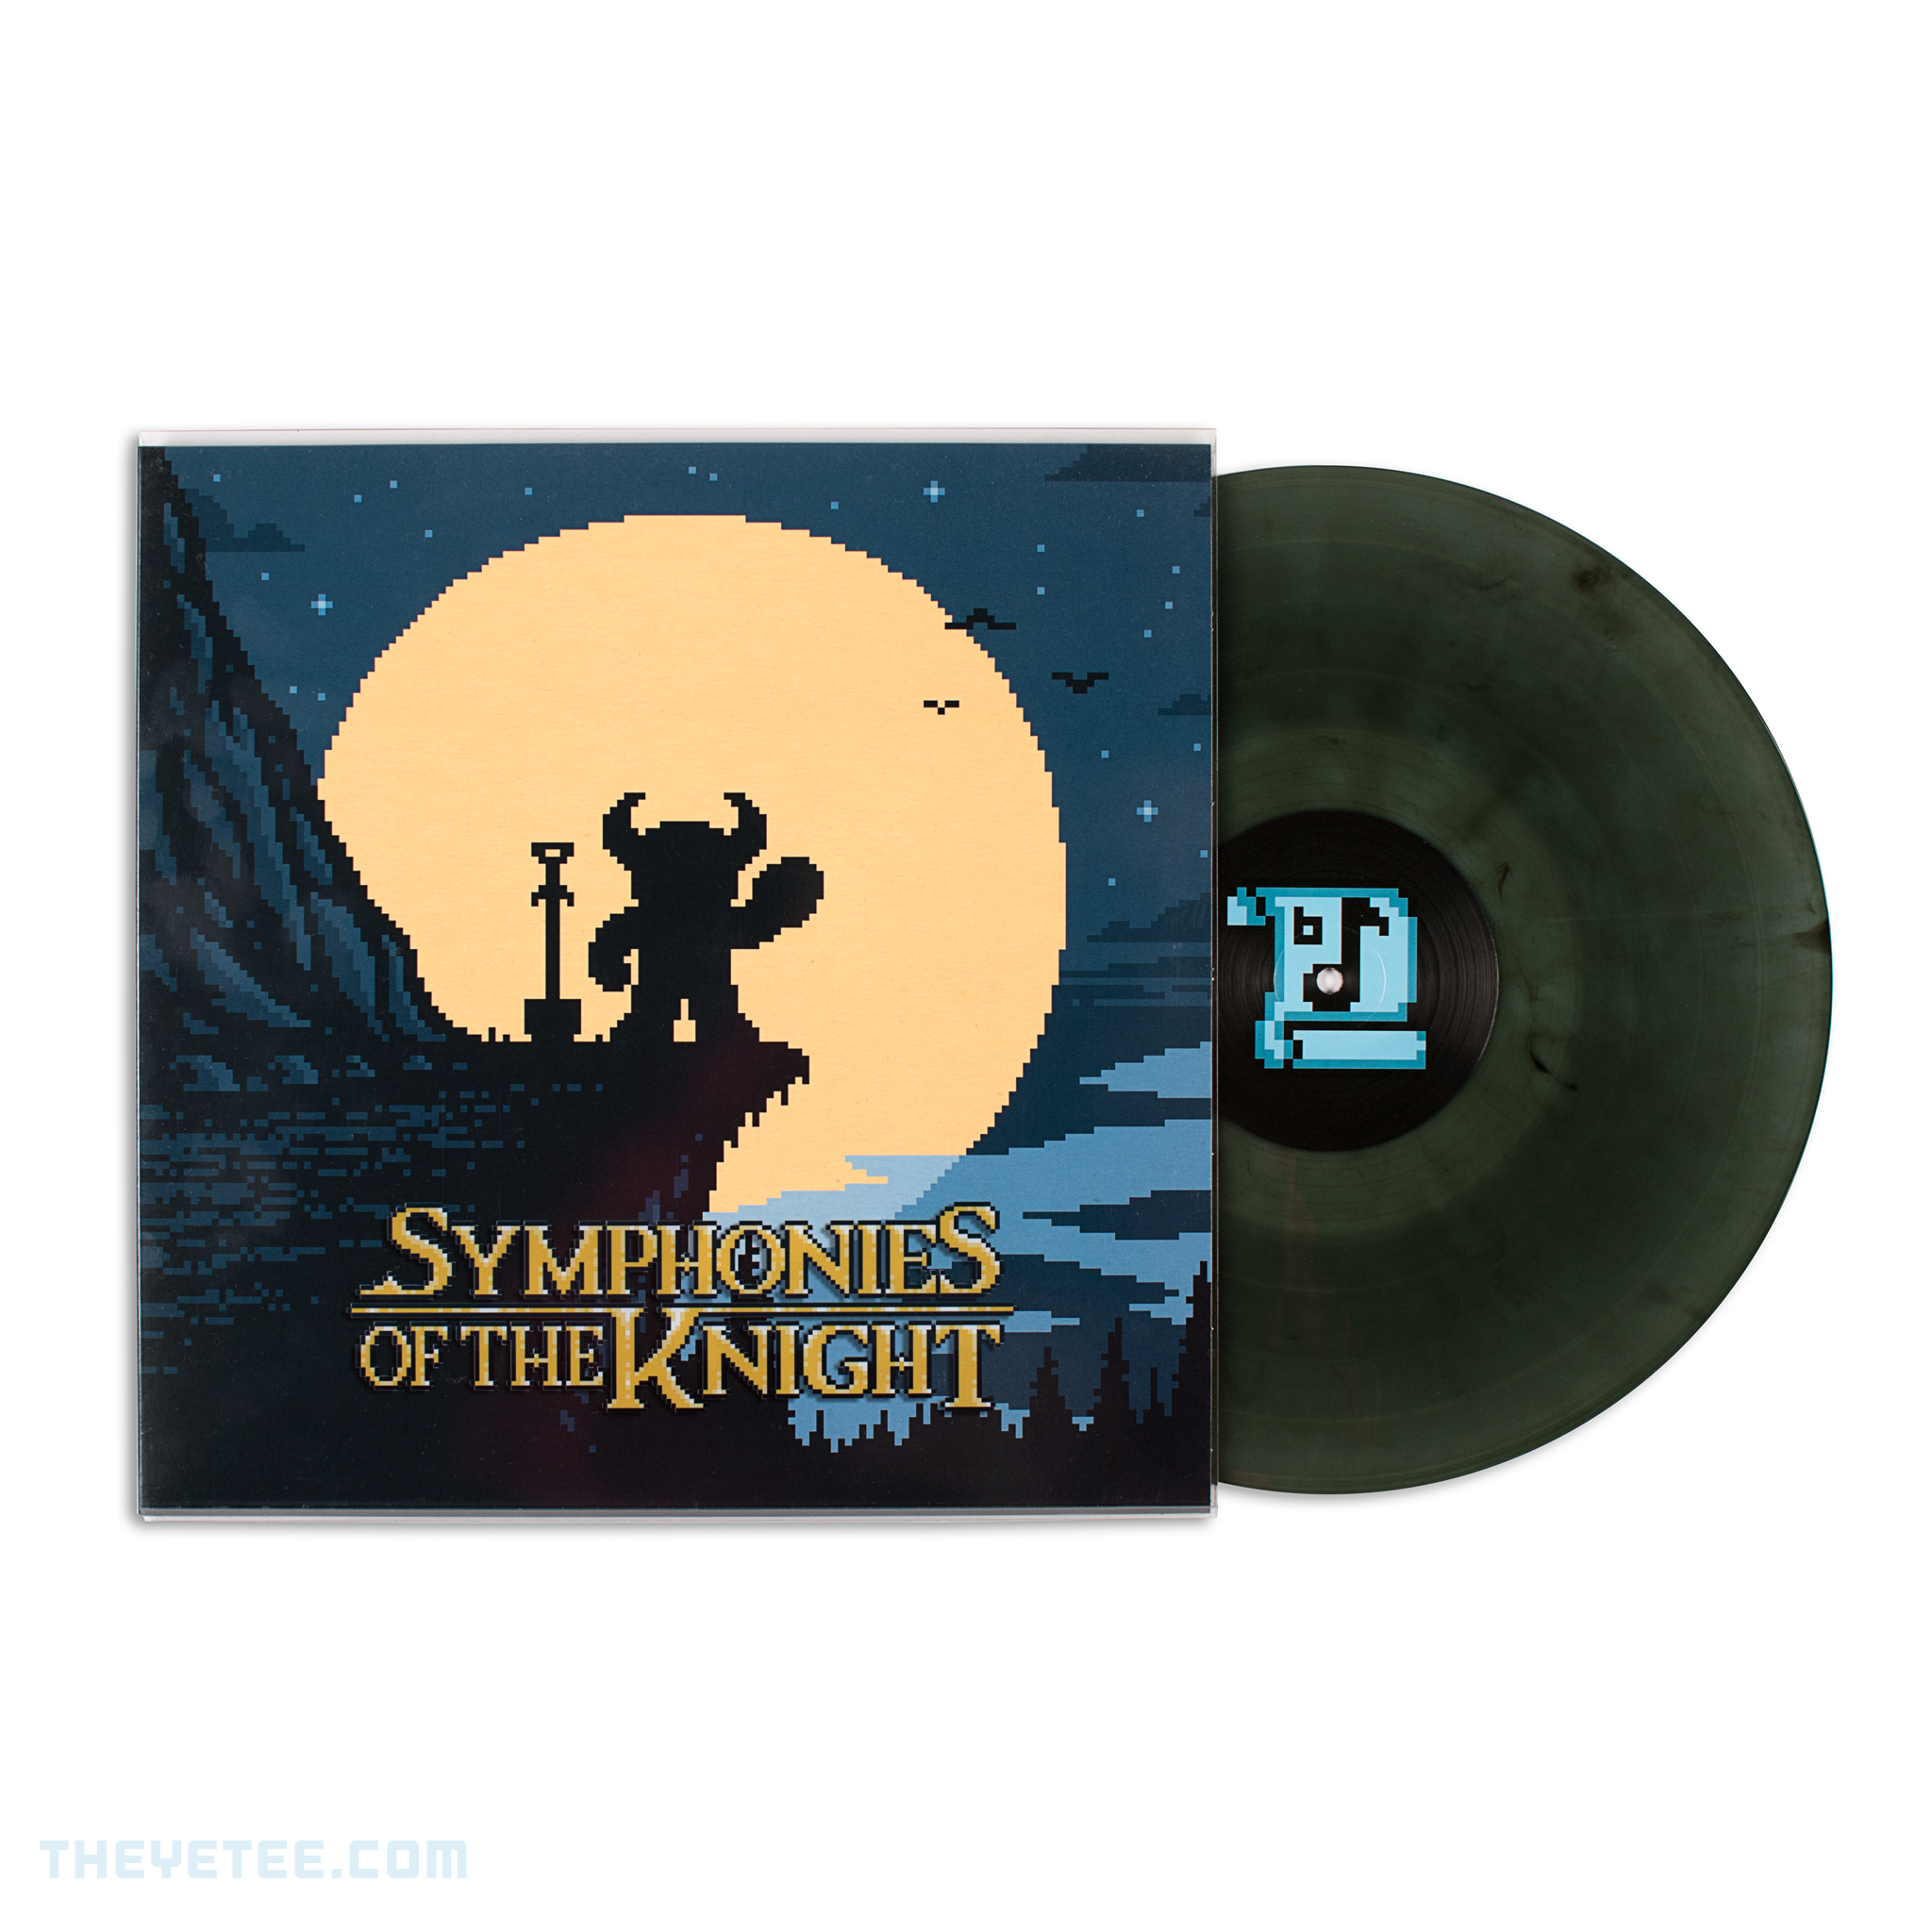 Image of Symphonies of the Knight